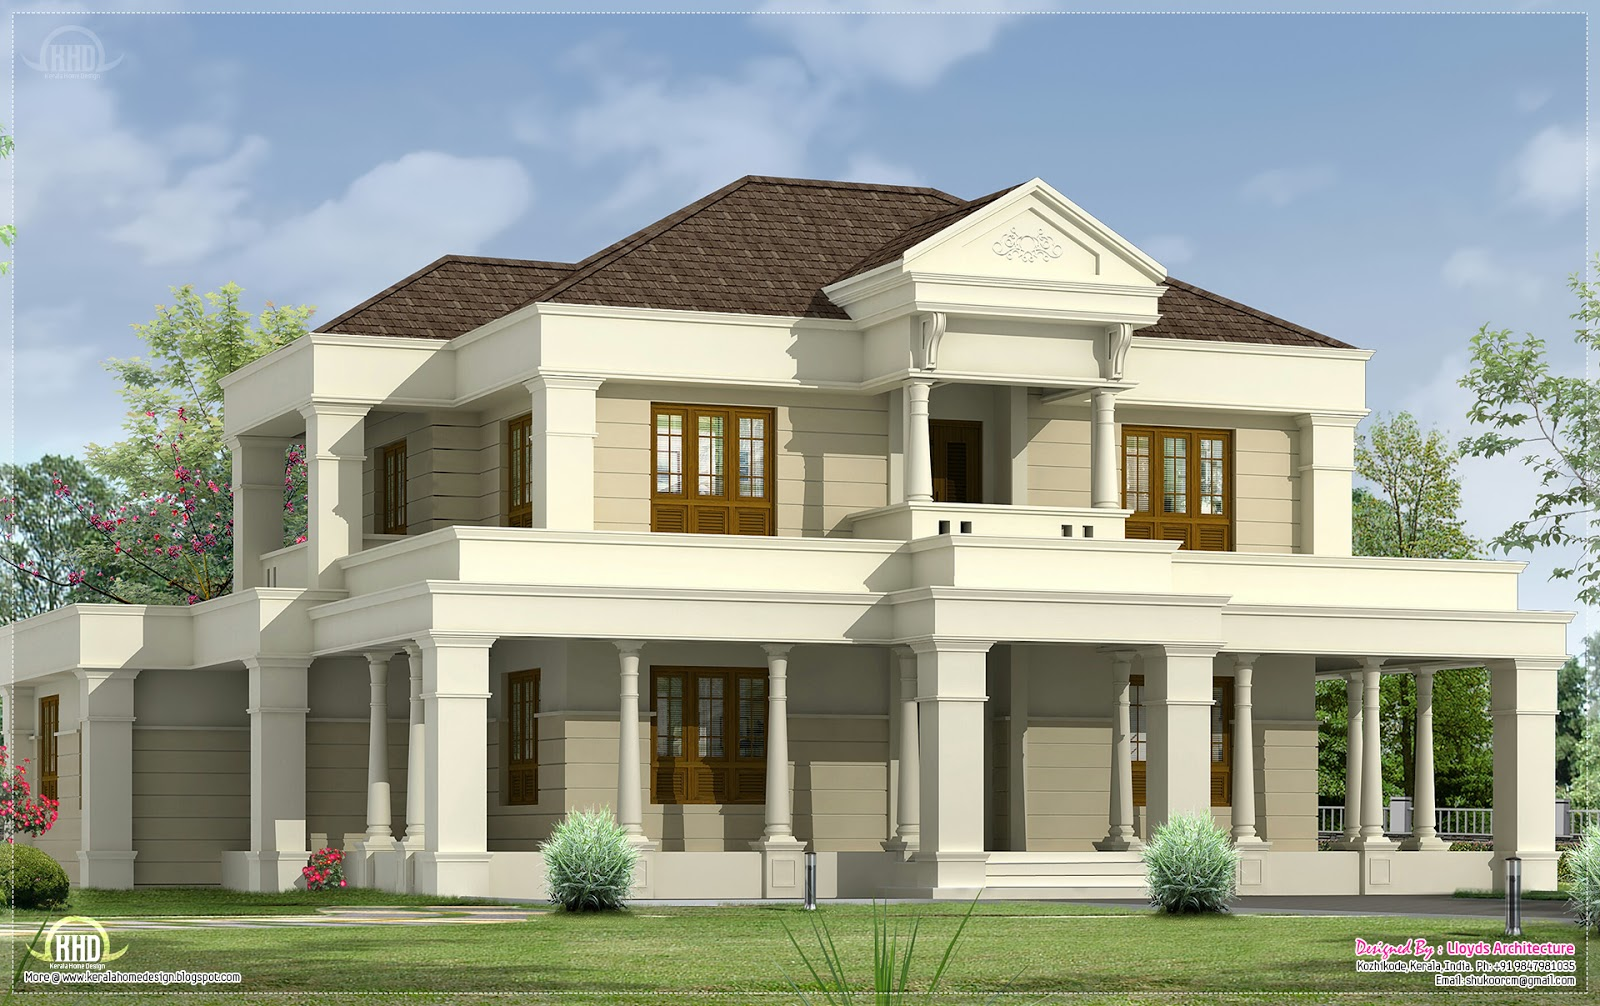 5 bedroom luxurious villa exterior design kerala home Villa designs india